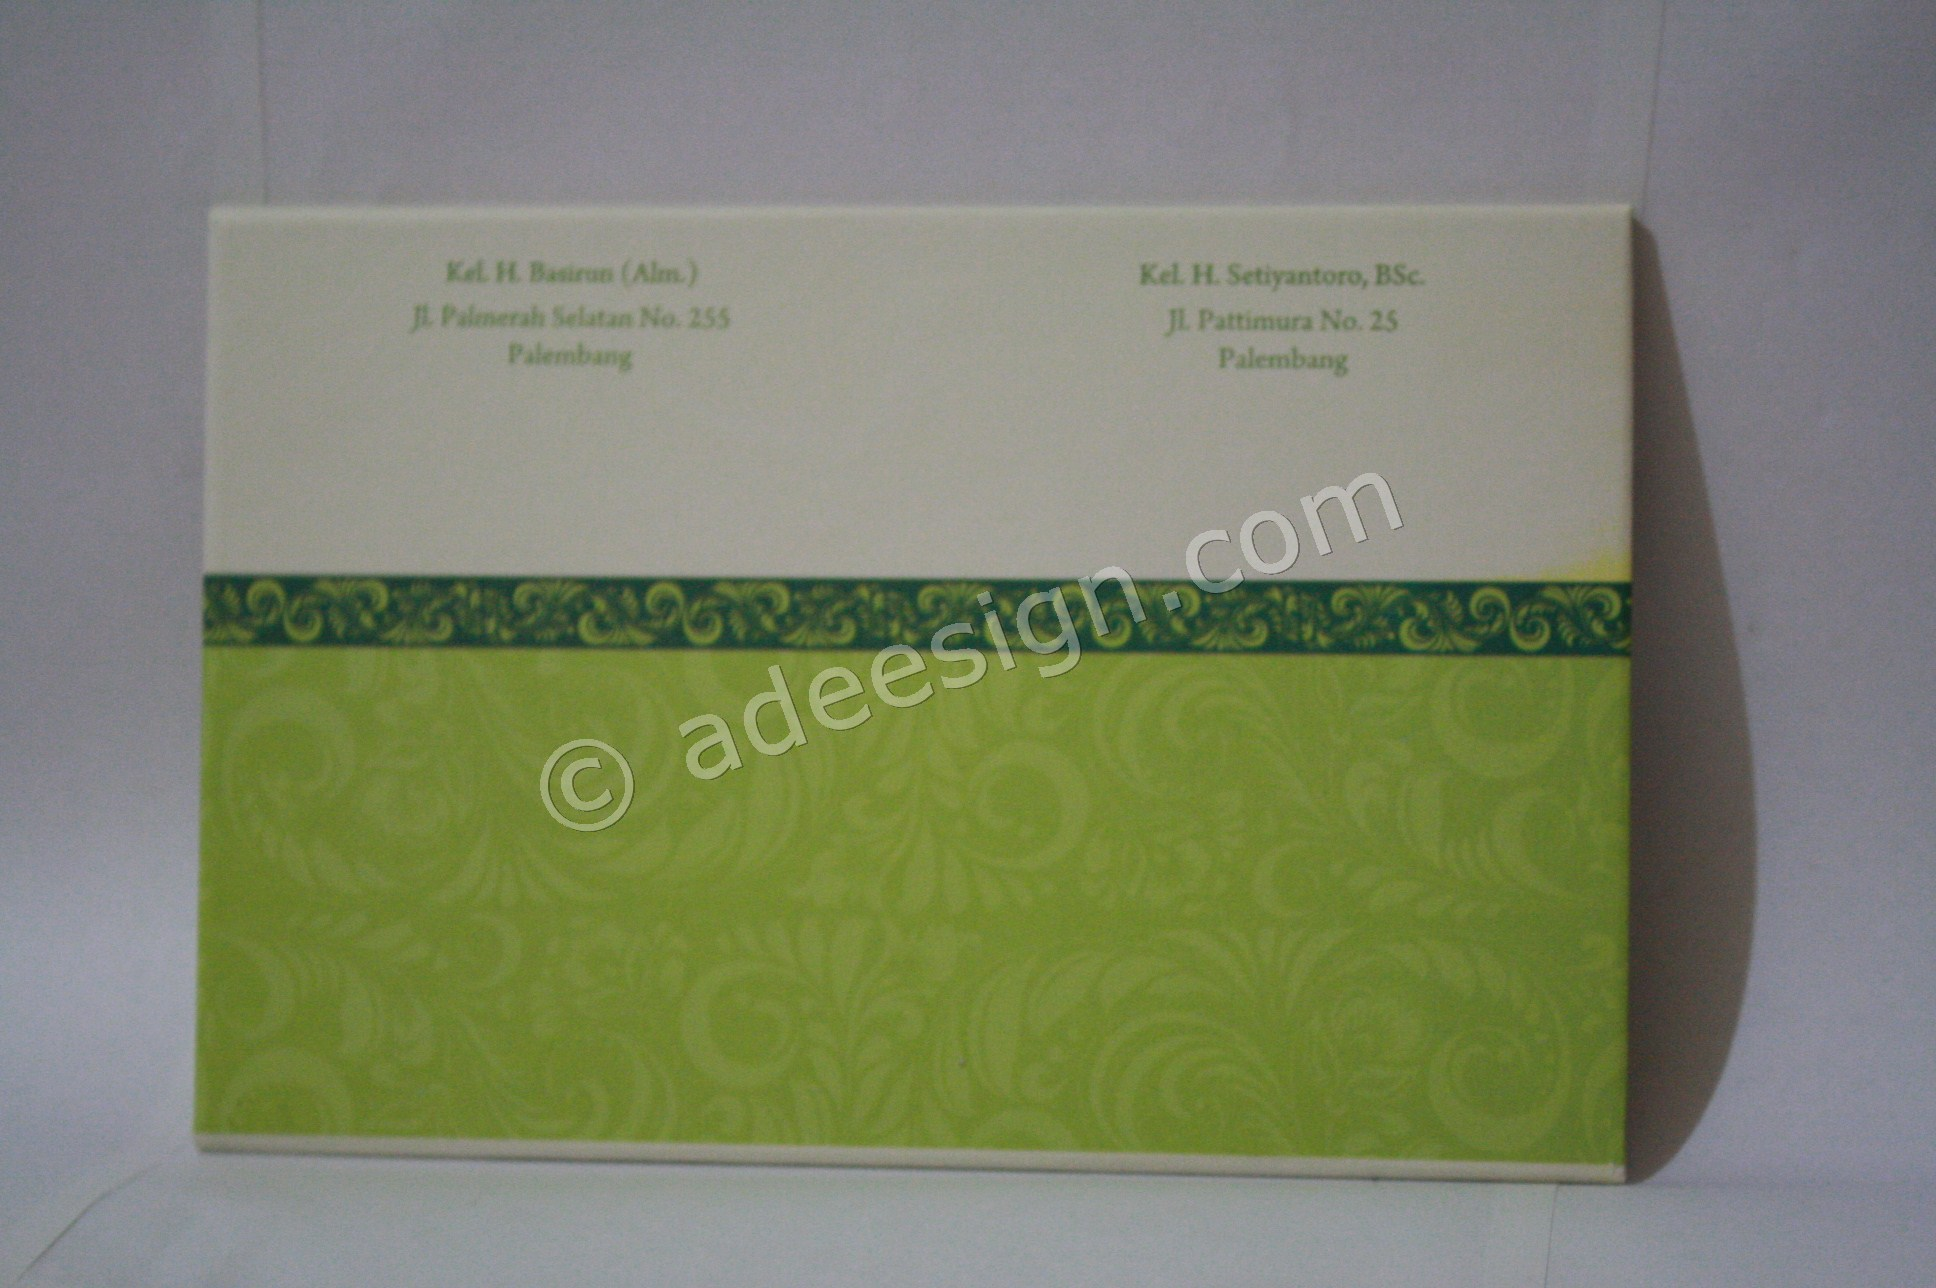 Kartu Undangan Pernikahan Hard Cover Indah dan Wendy 2 - Percetakan Wedding Invitations Unik dan Simple di Simomulyo